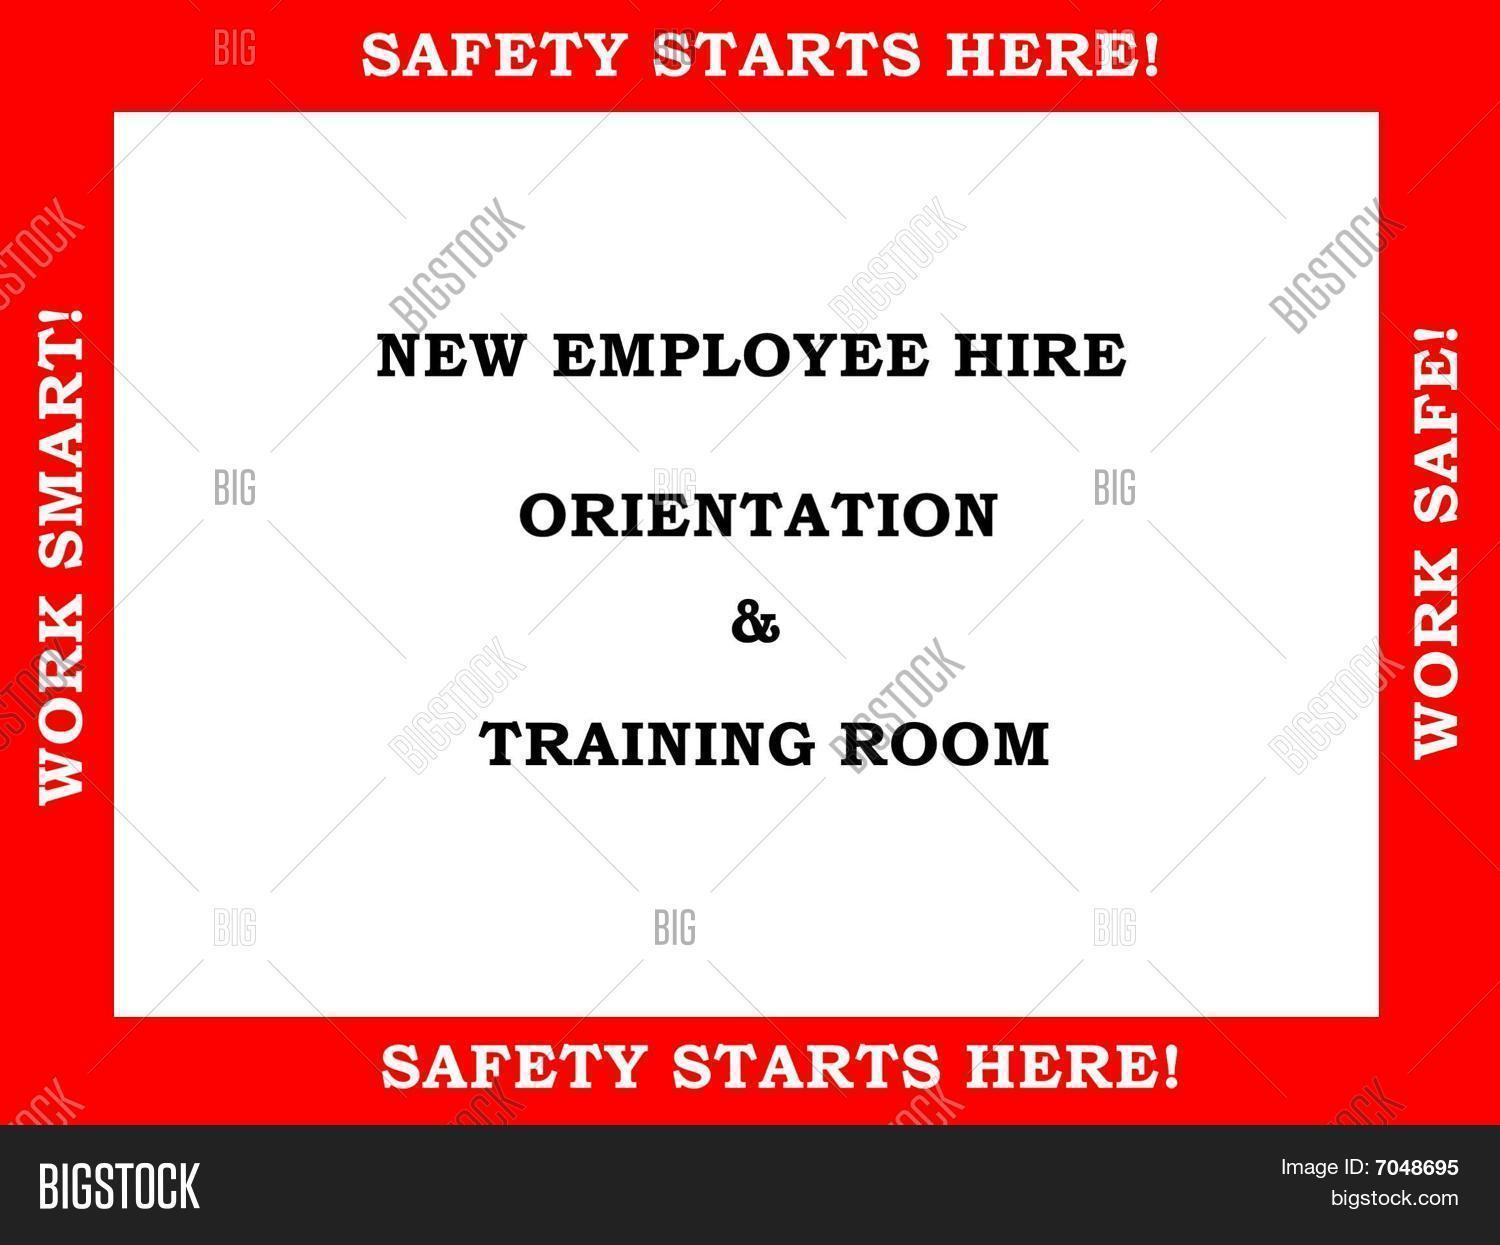 employee training room image photo free trial bigstock